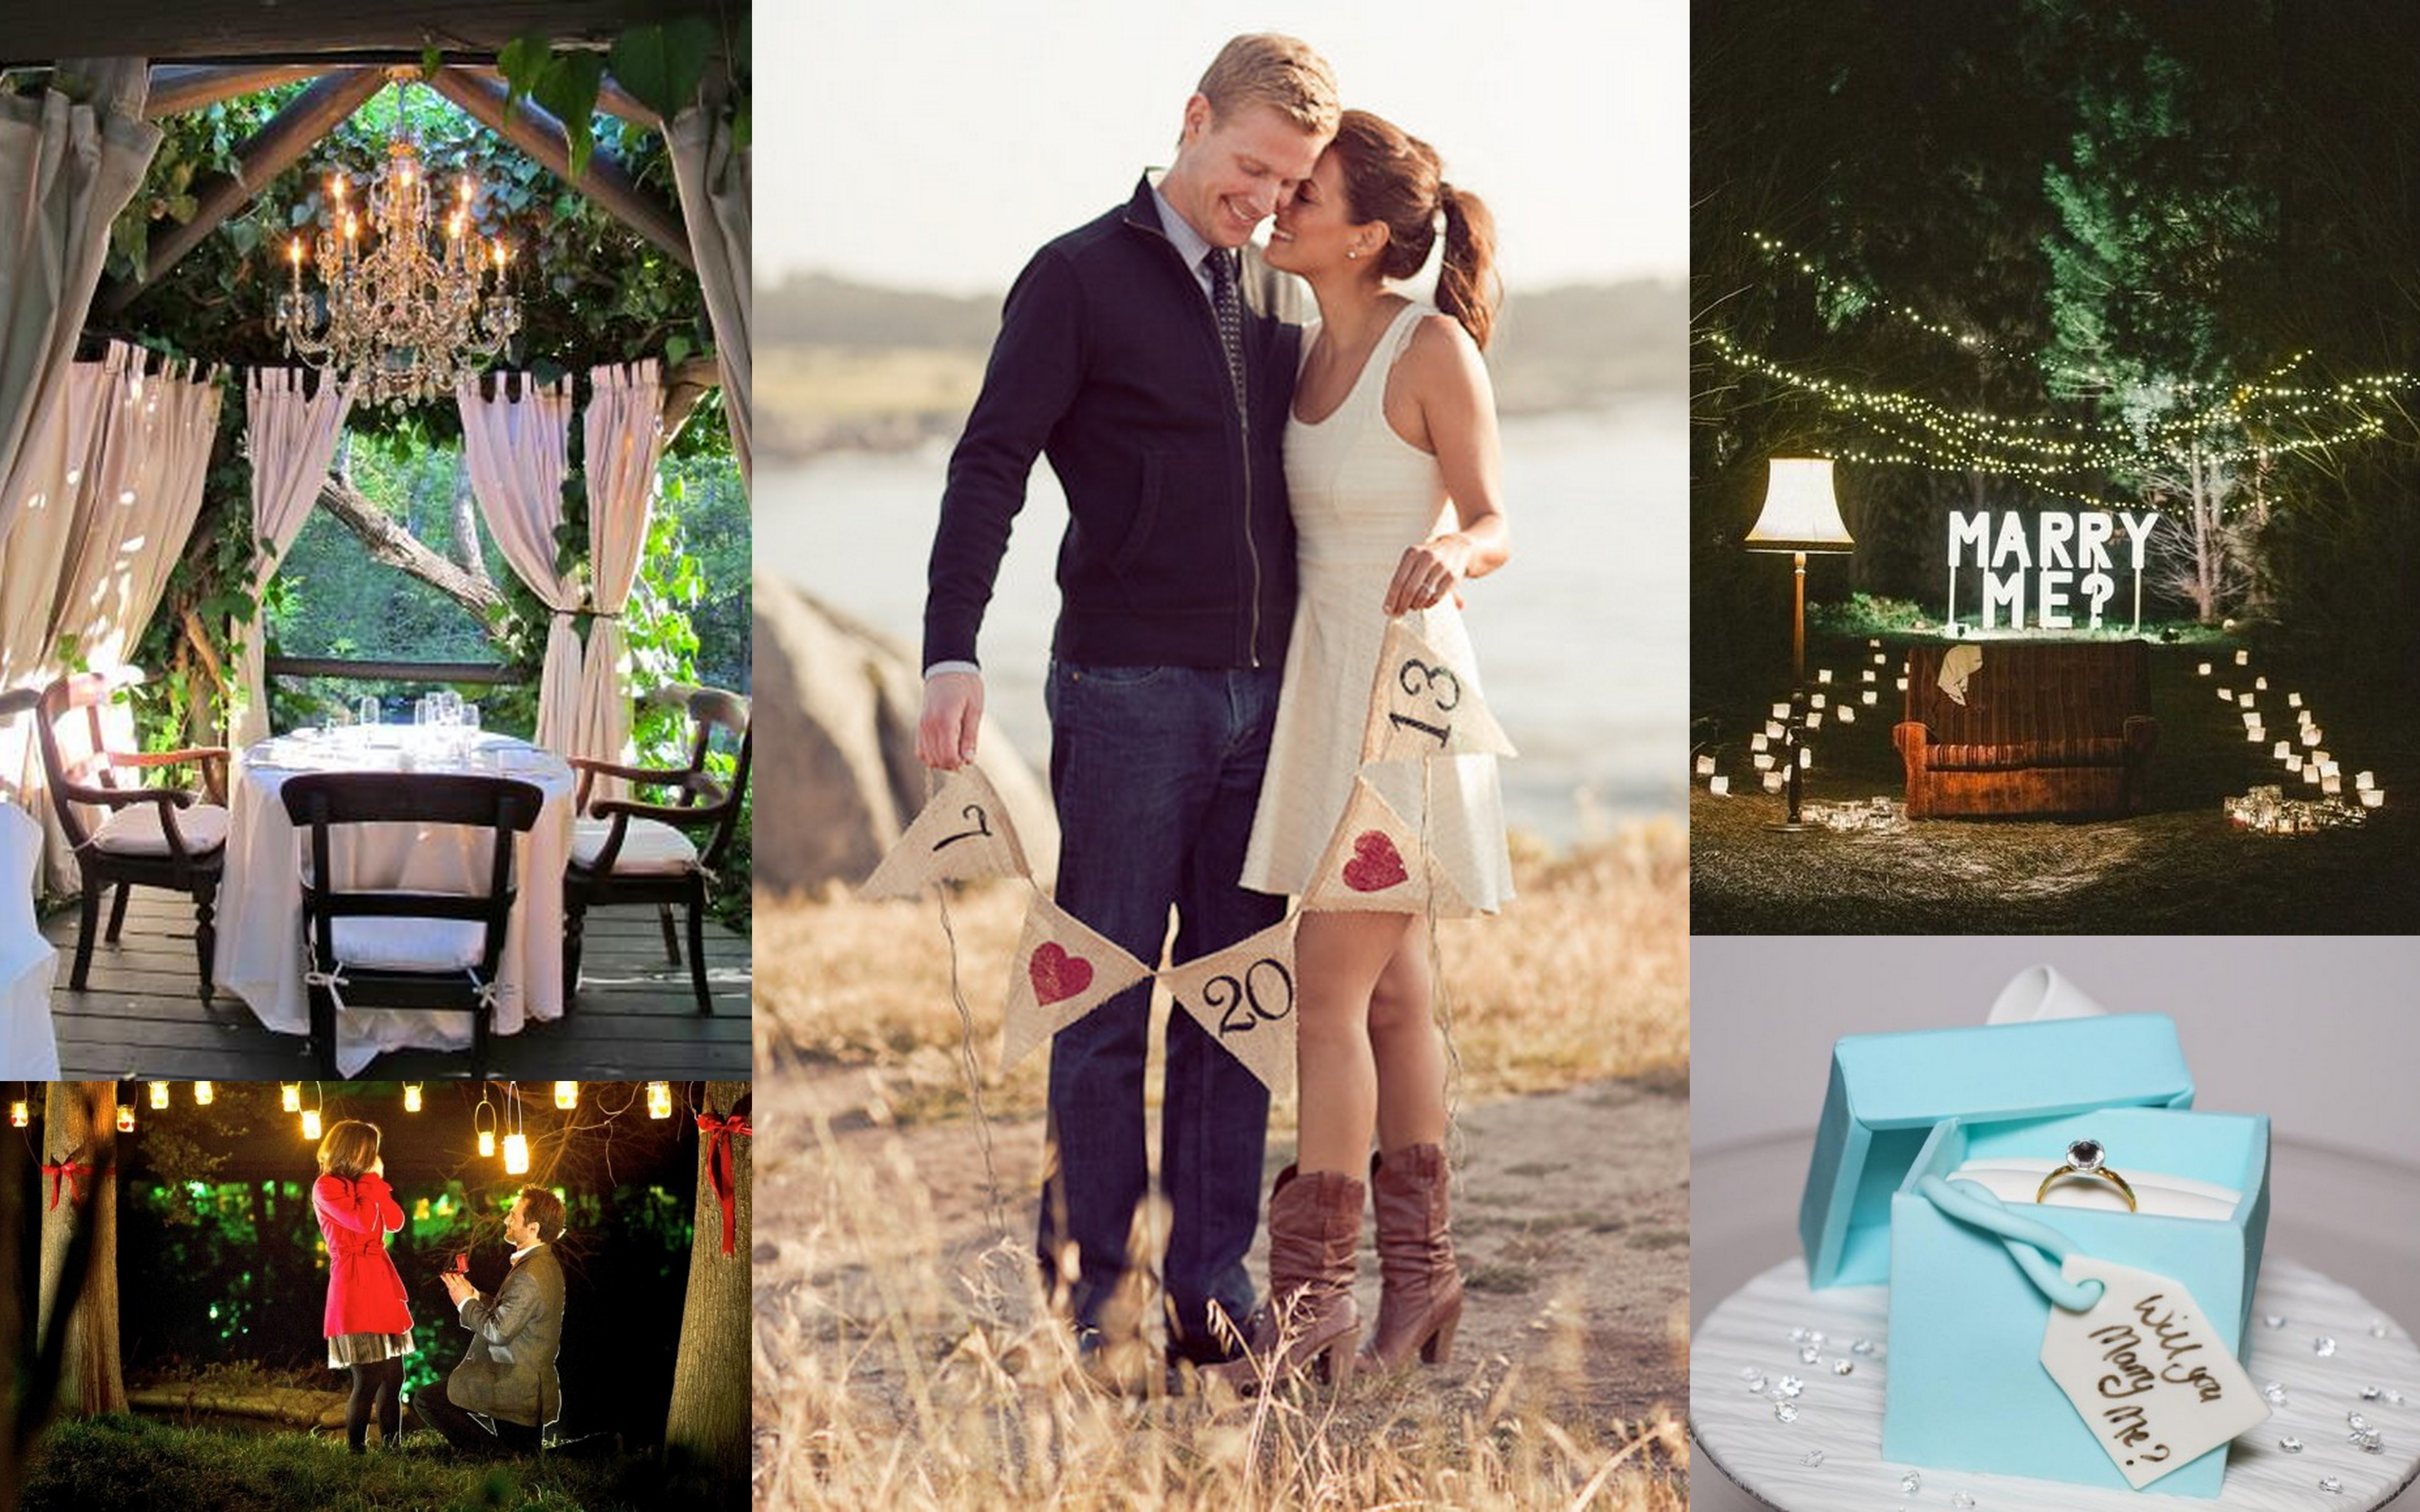 Marriage Proposal Ideas For Her - Wedding Ideas